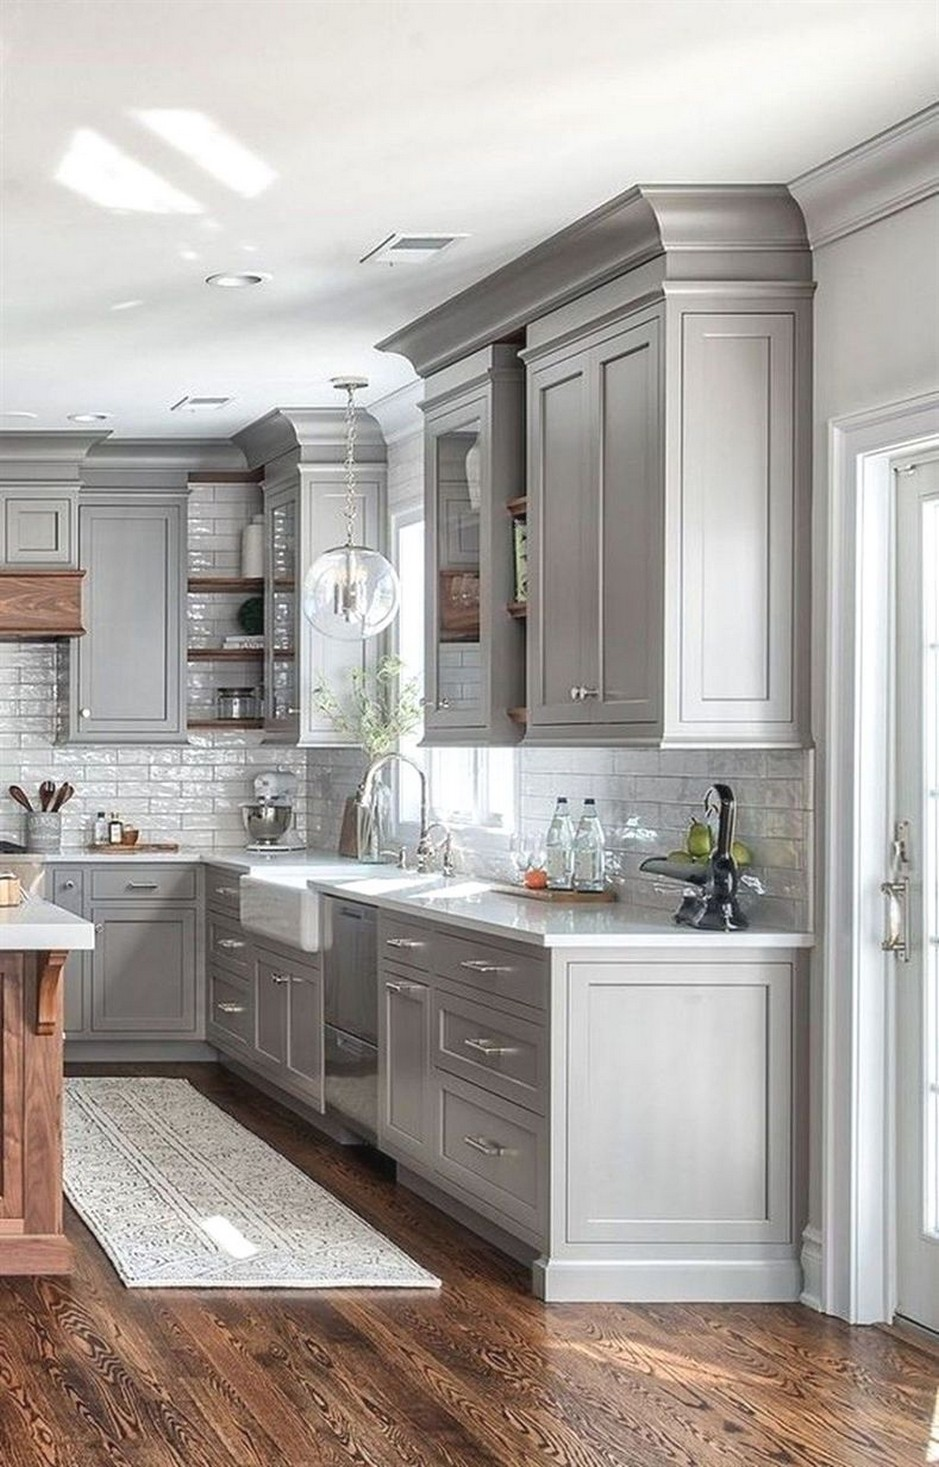 71 Painted Kitchen Cabinets Ideas For Home Decor 62